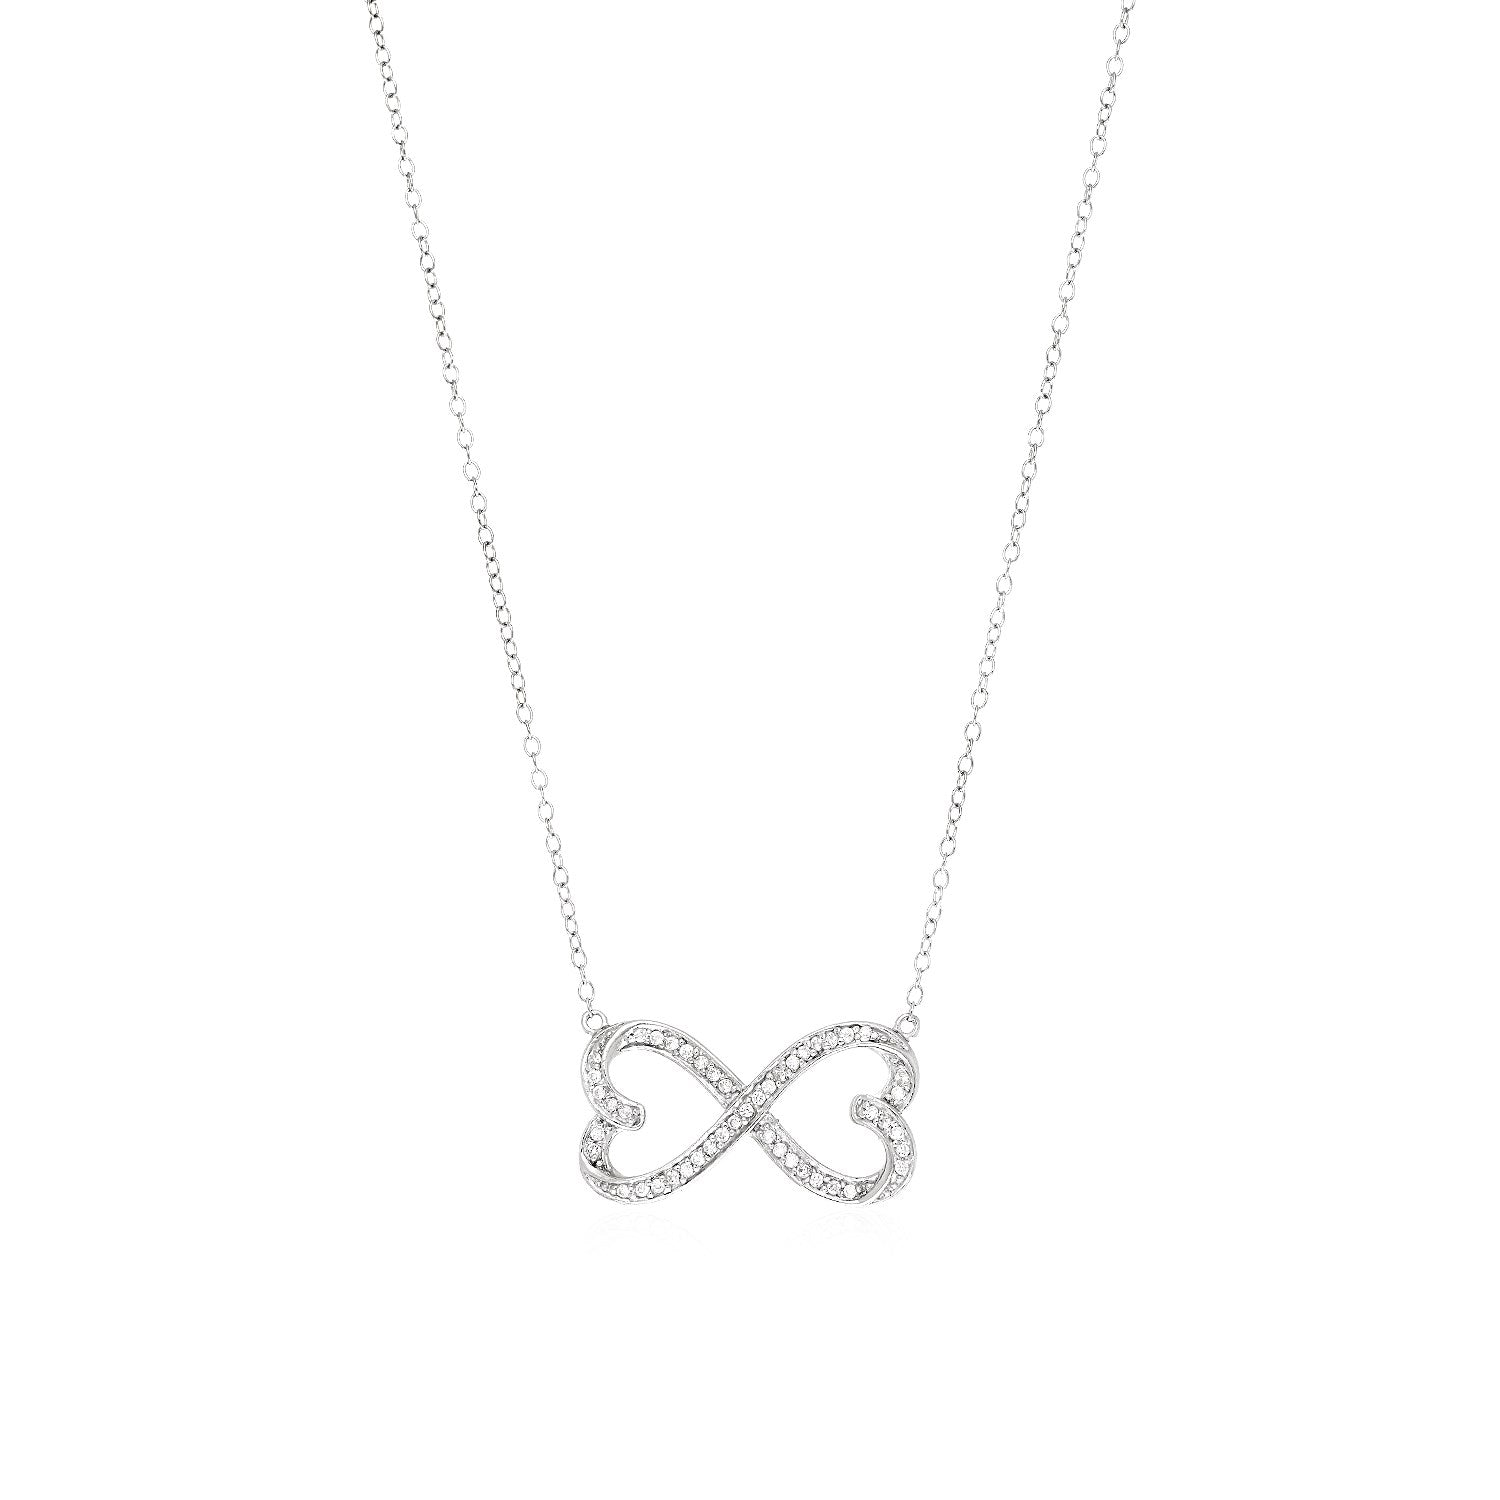 Double Heart Infinity Necklace with Cubic Zirconia in Sterling Silver